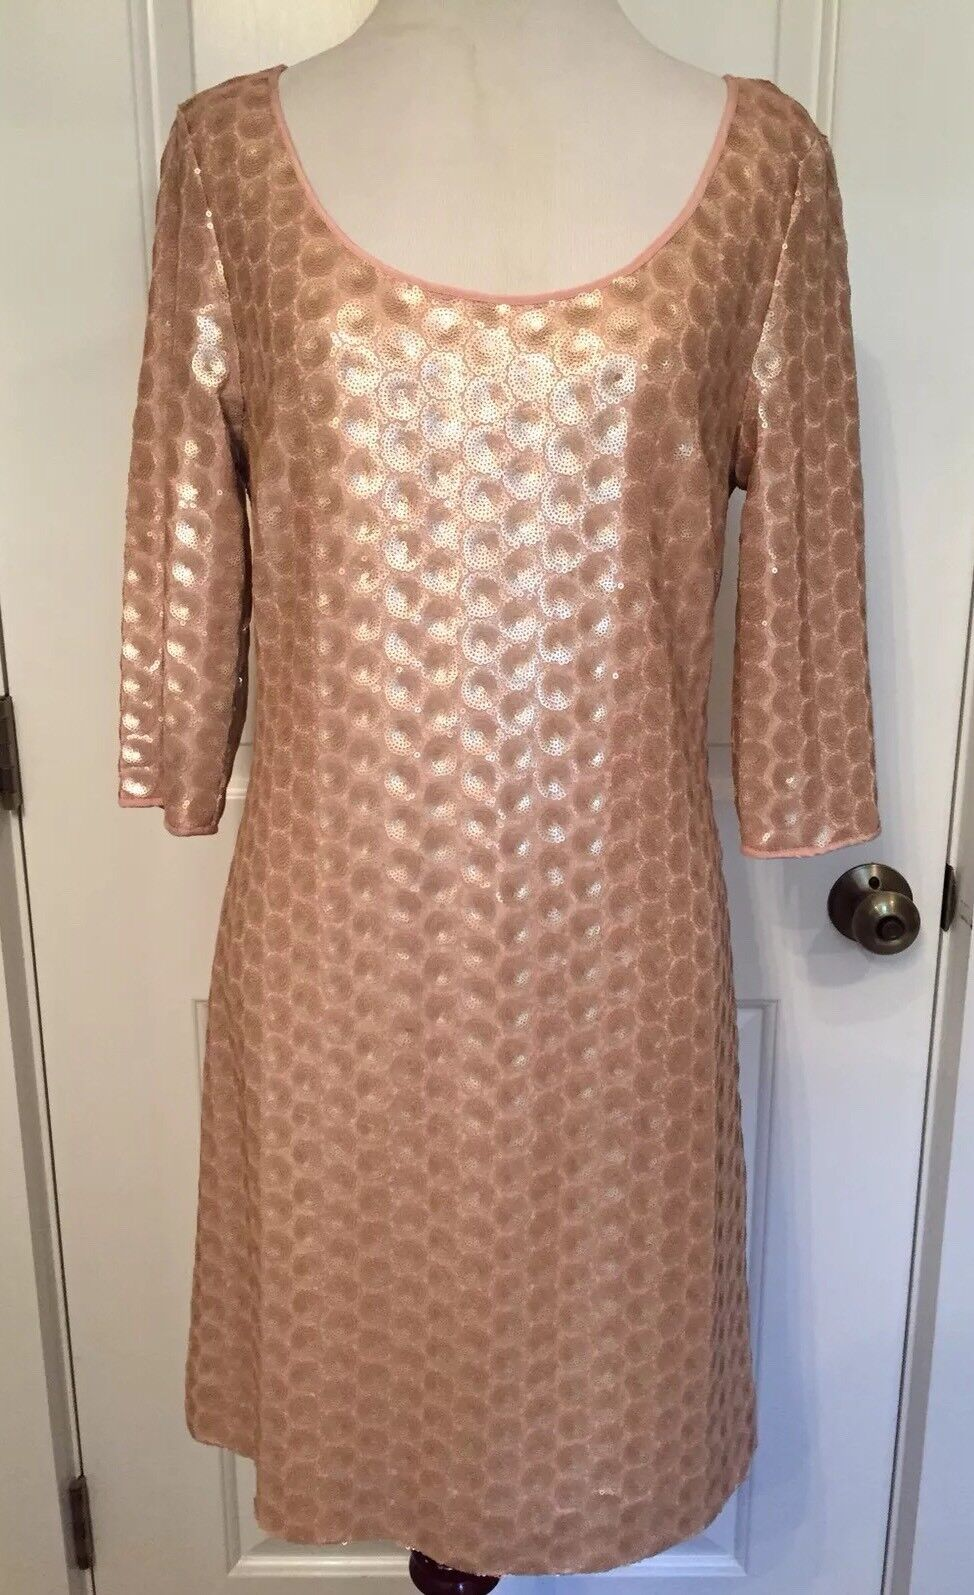 ETCETERA WOMENS DRESS MINI SHIFT 2 TRUNK SHOW PINK LIGHT gold FULLY SEQUINED